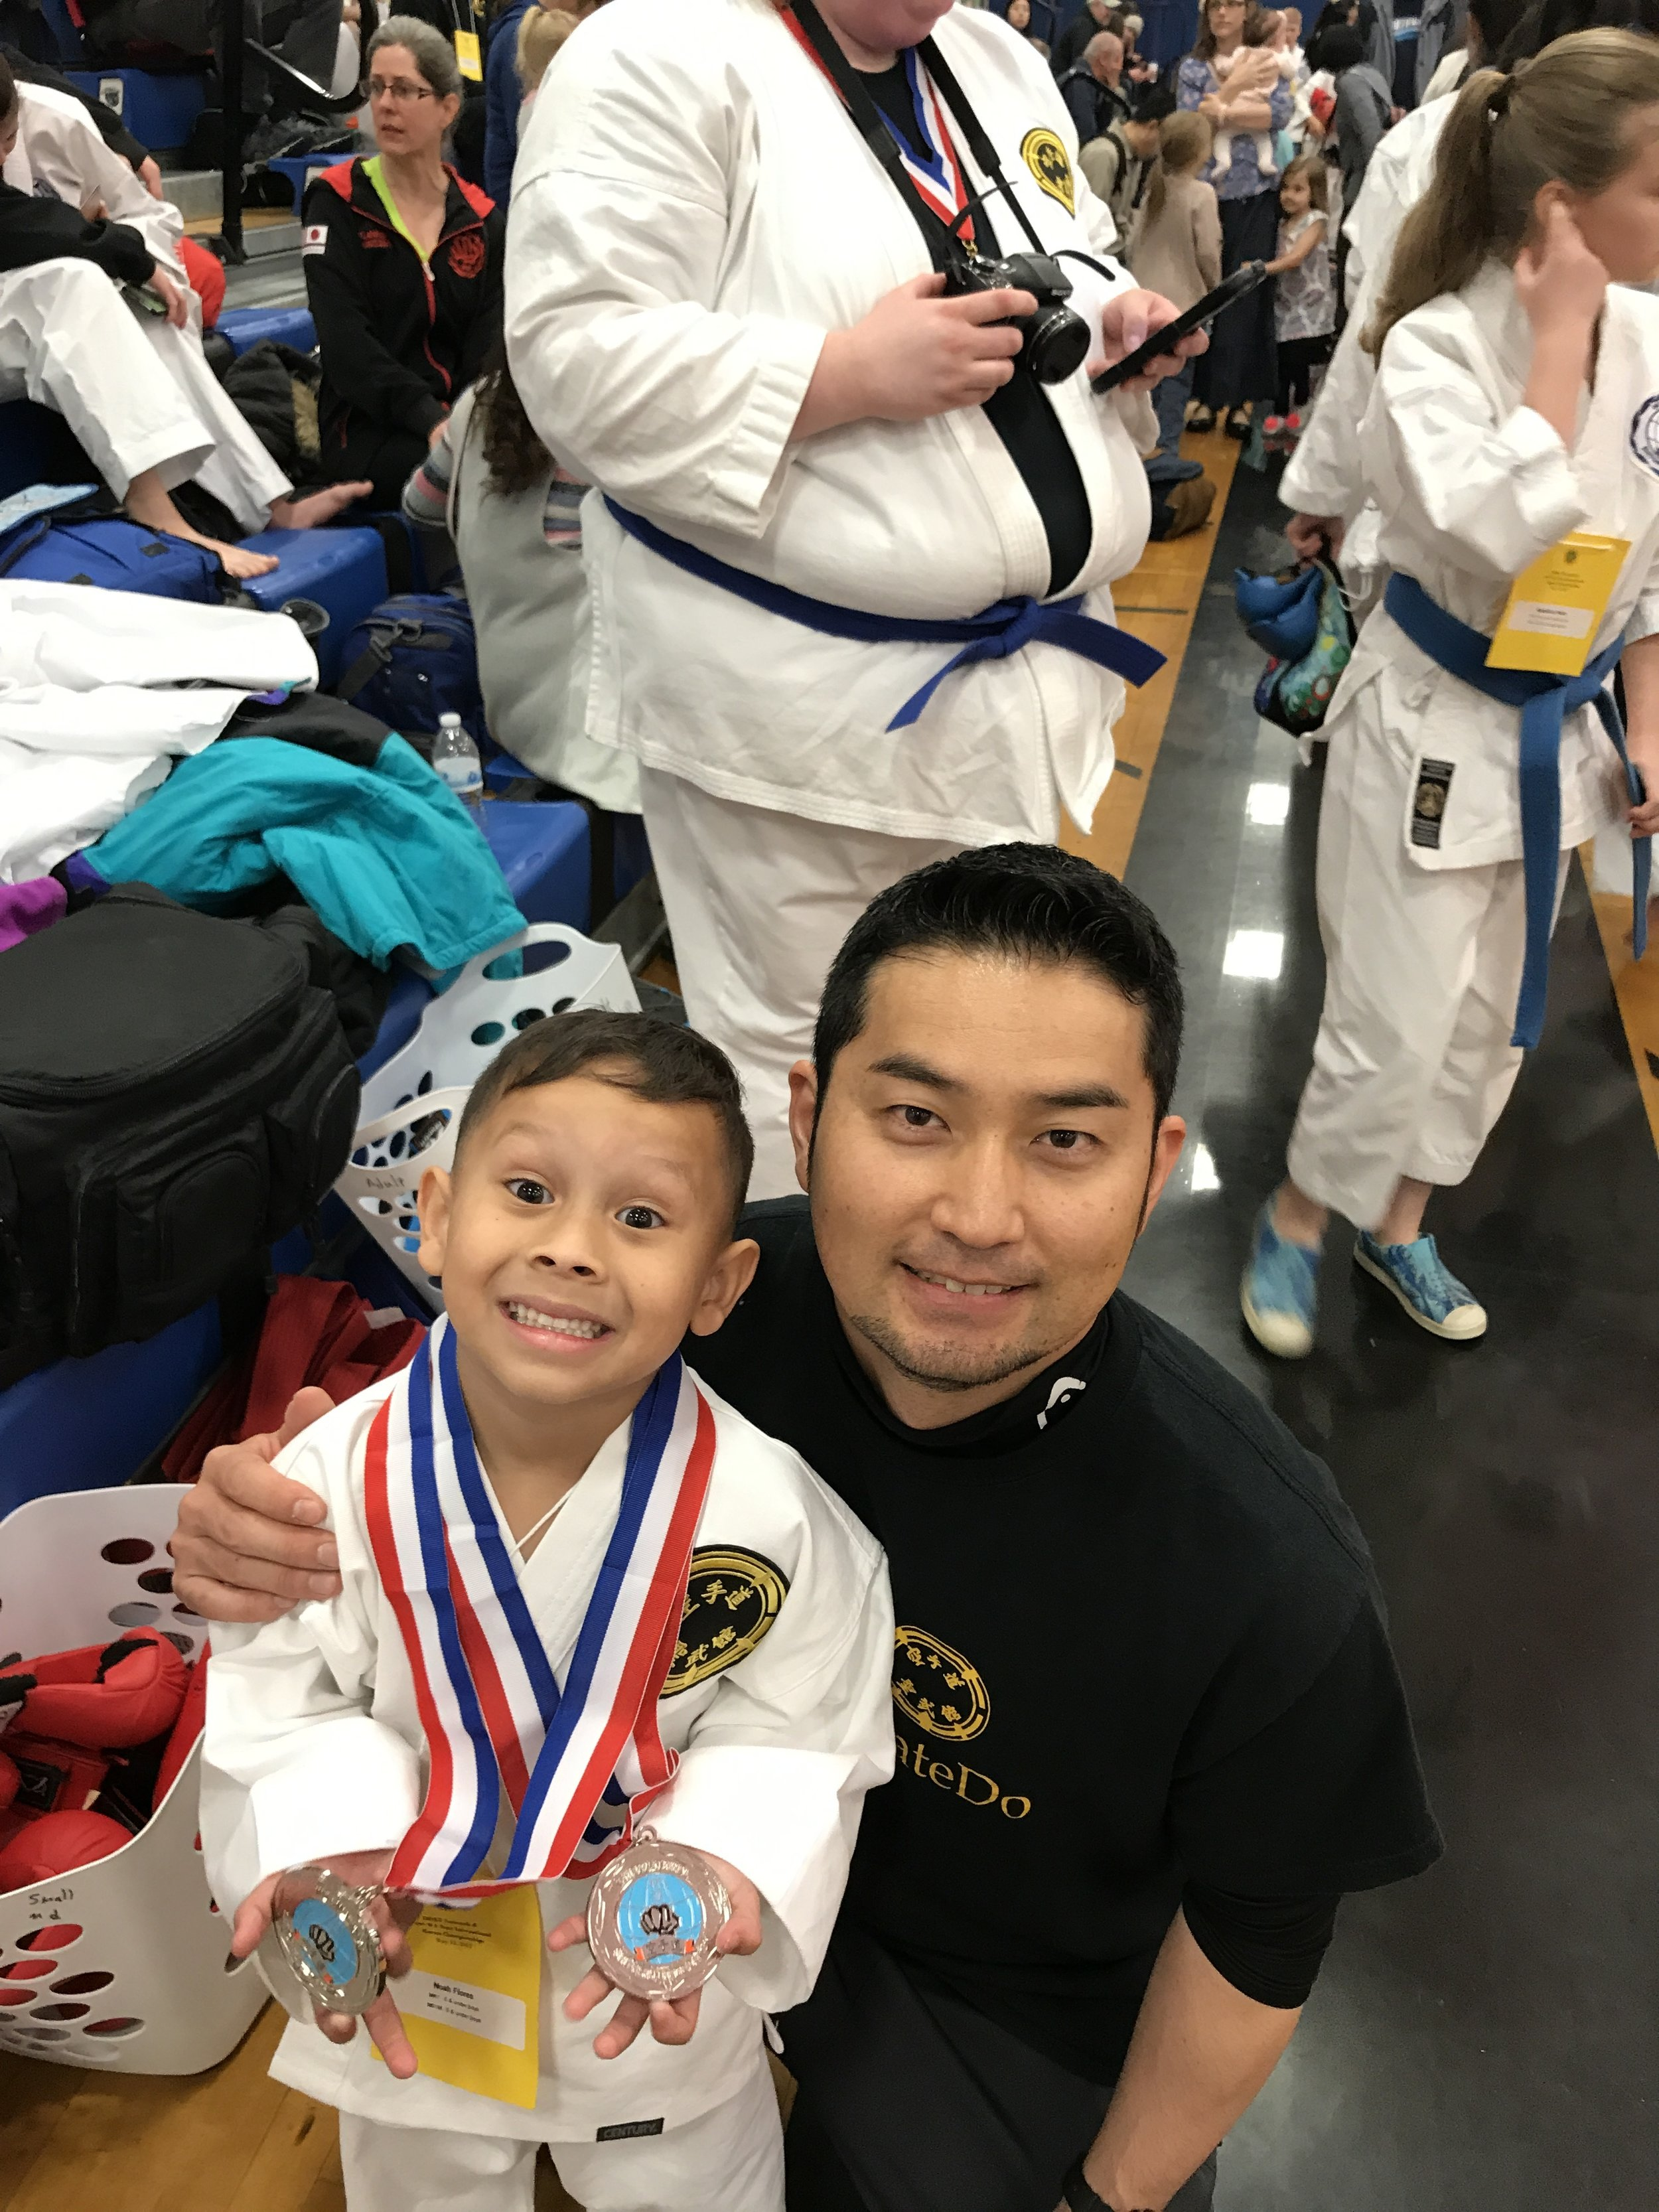 Noah and his two medals!